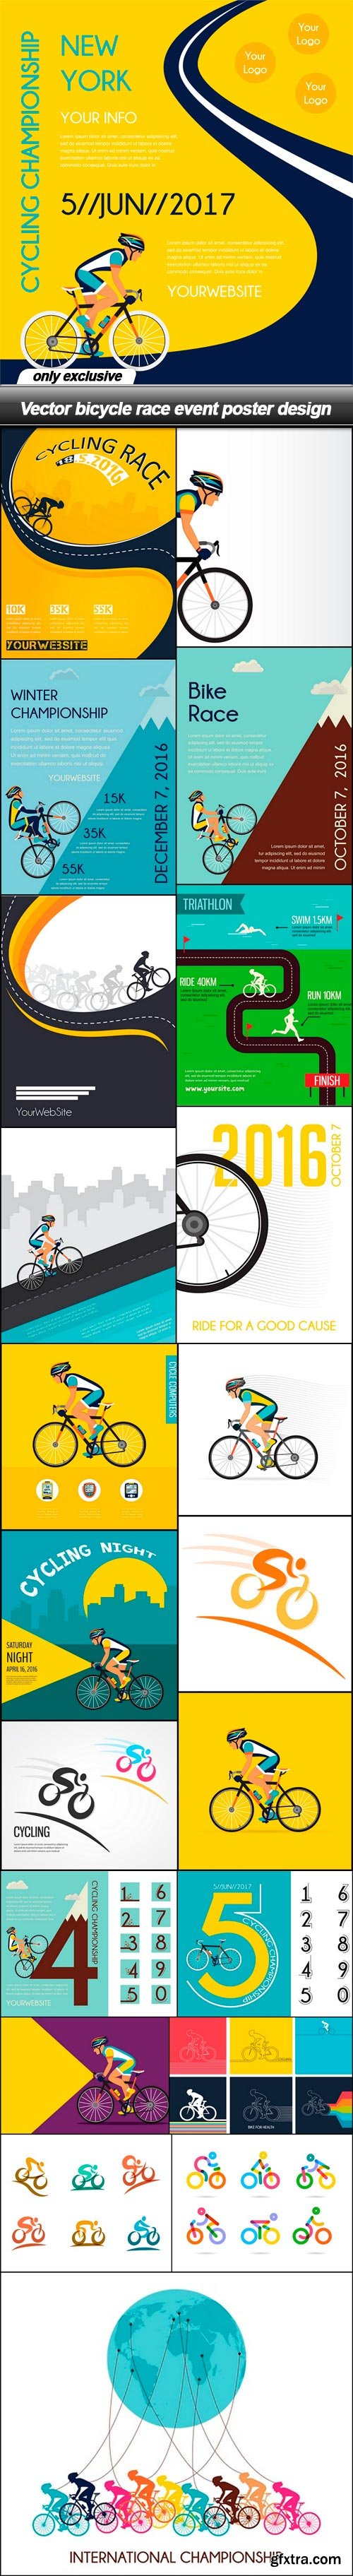 Vector bicycle race event poster design - 22 EPS